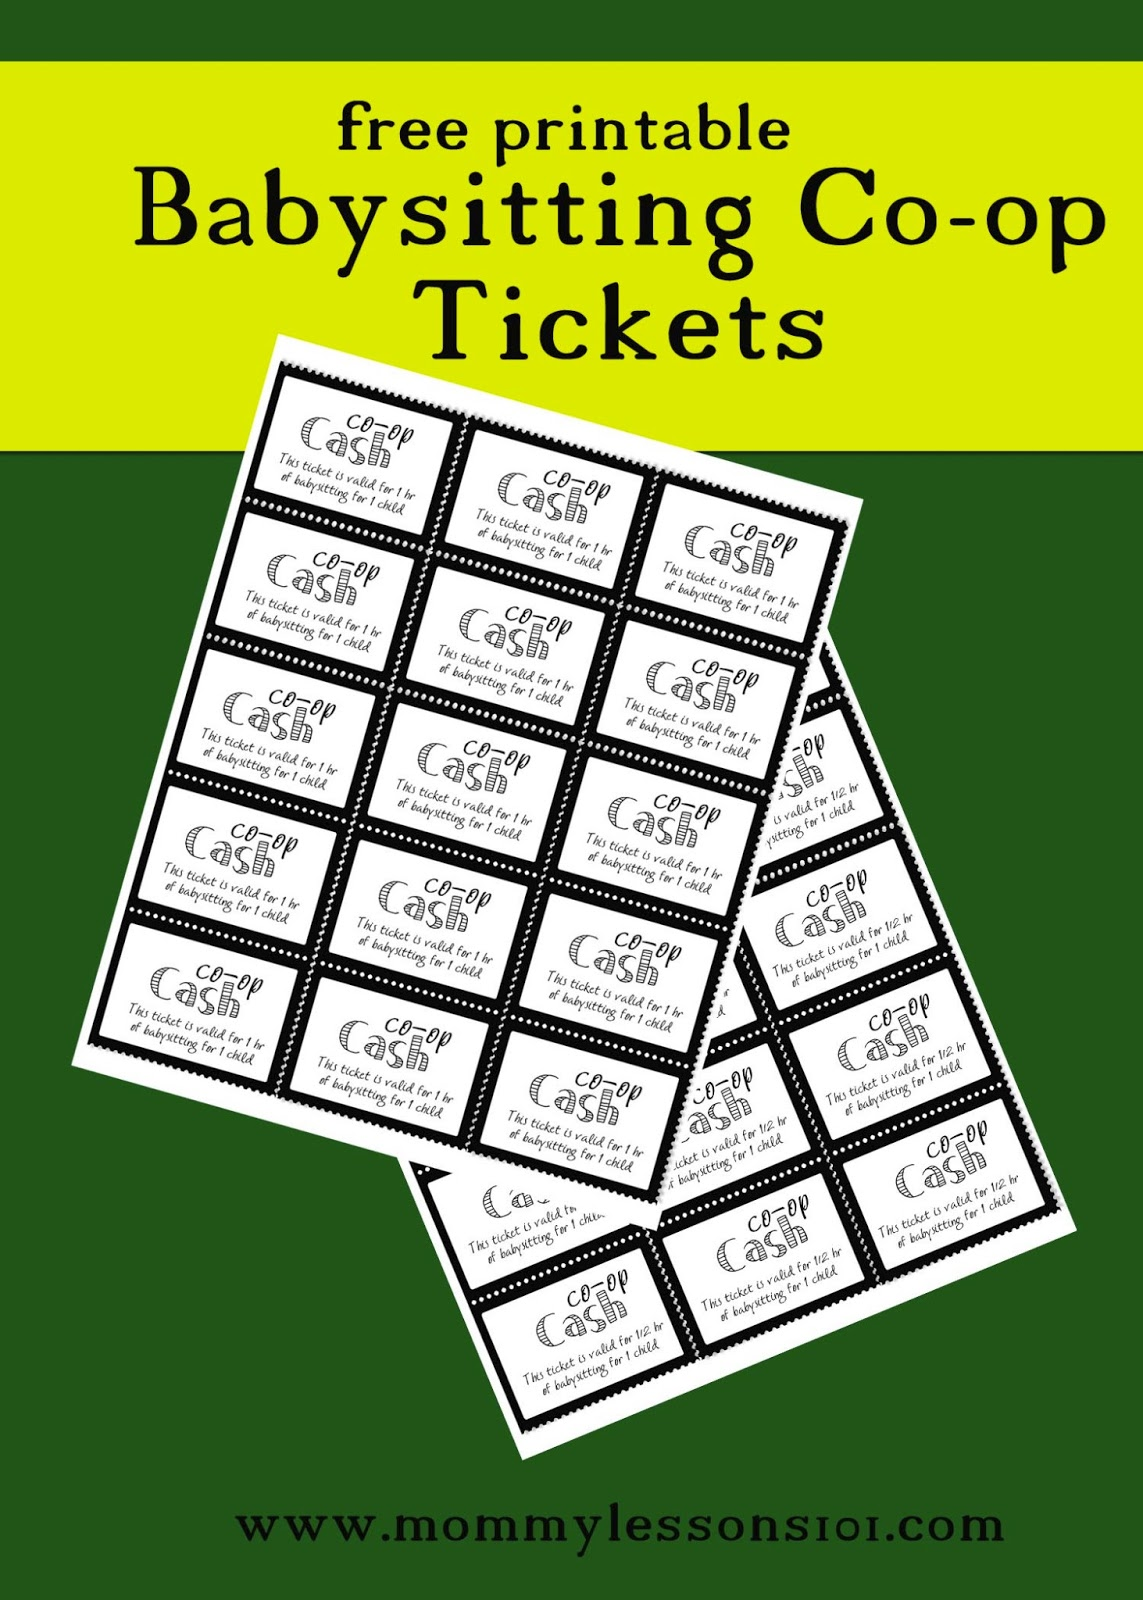 mommy lessons printables and tips for setting up a half hour babysitting tickets